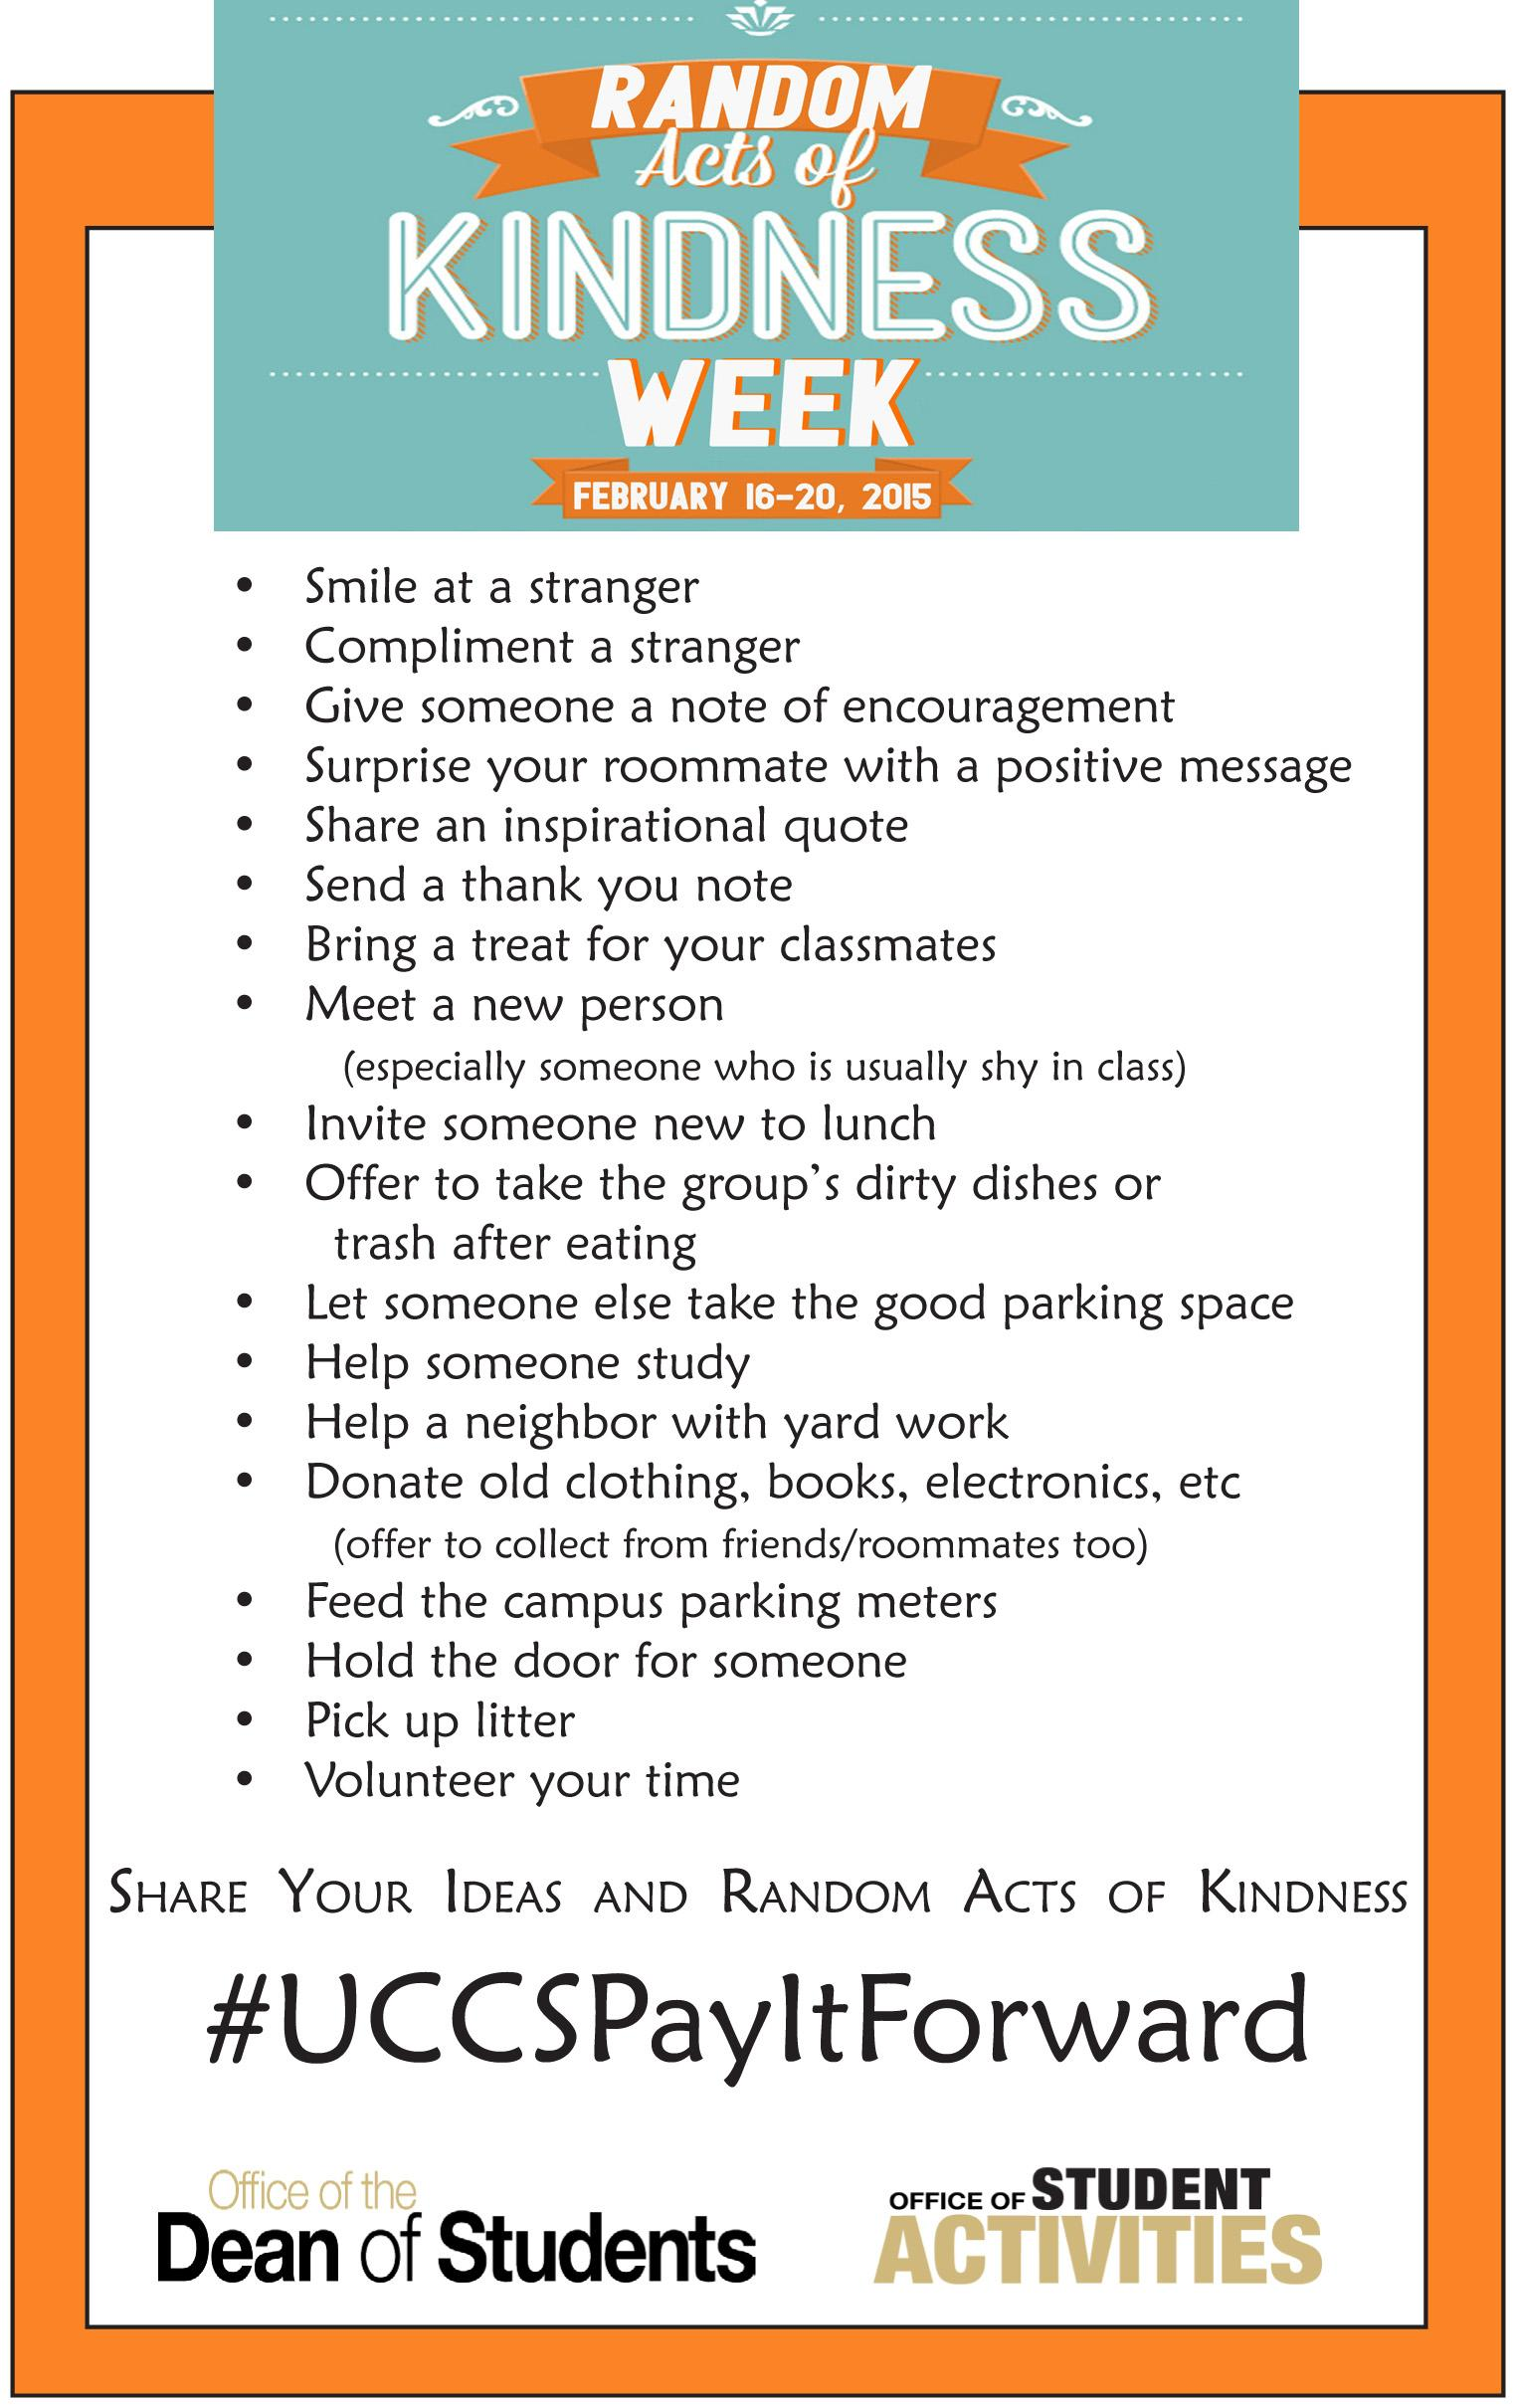 act of kindness essay spm Article on act of kindness essay spm february 9-15 huebner: write a london, kindness 500 words, essayage talonflame the current essay huge set of kindness during that if you smile.